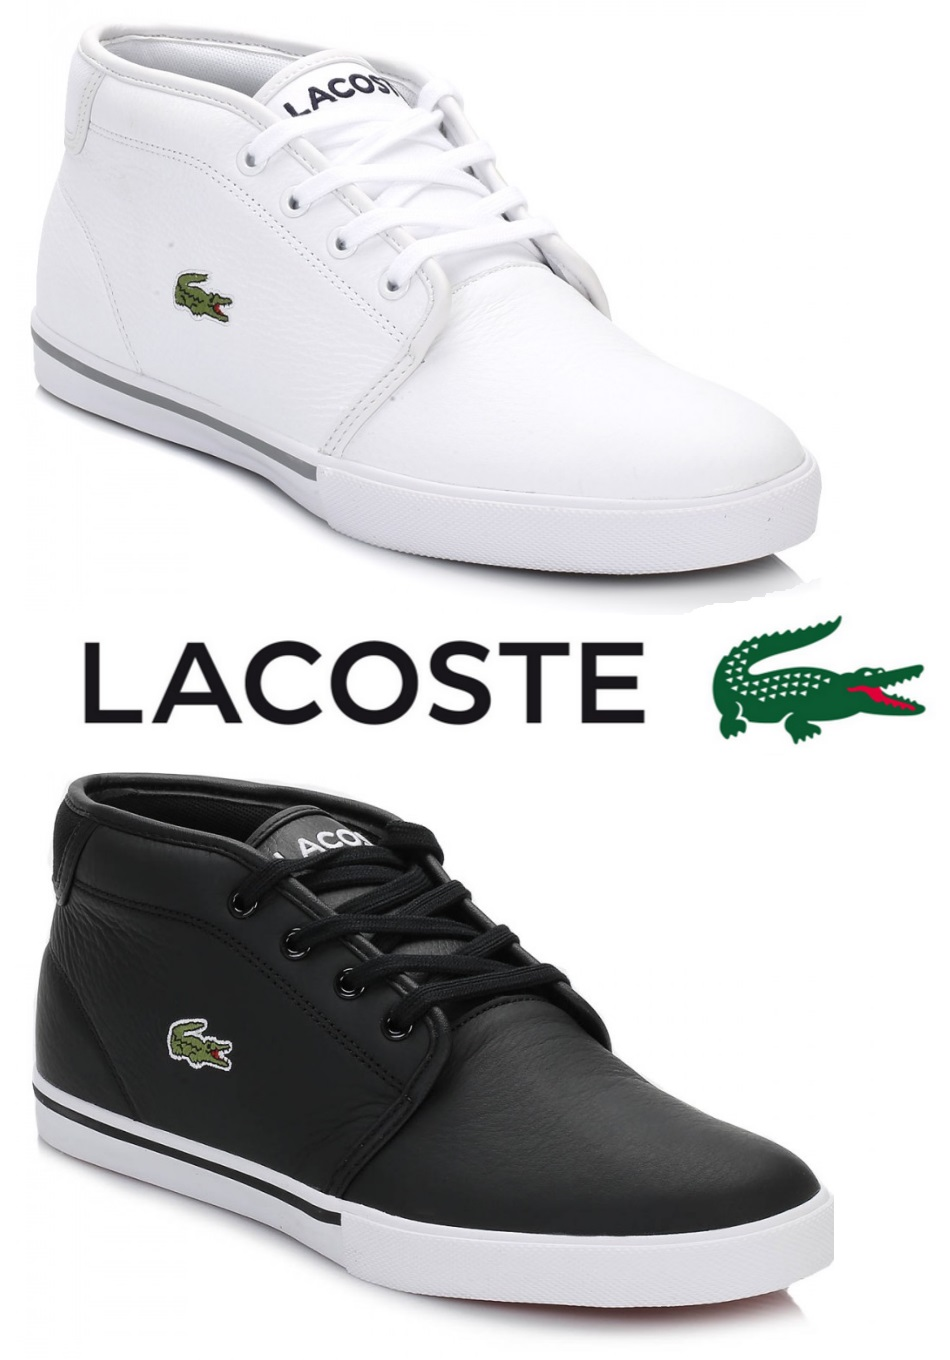 d3a3a4182 Details about Lacoste Mens Trainers Ampthill Black White Leather Lace Up  Casual Sport Shoes